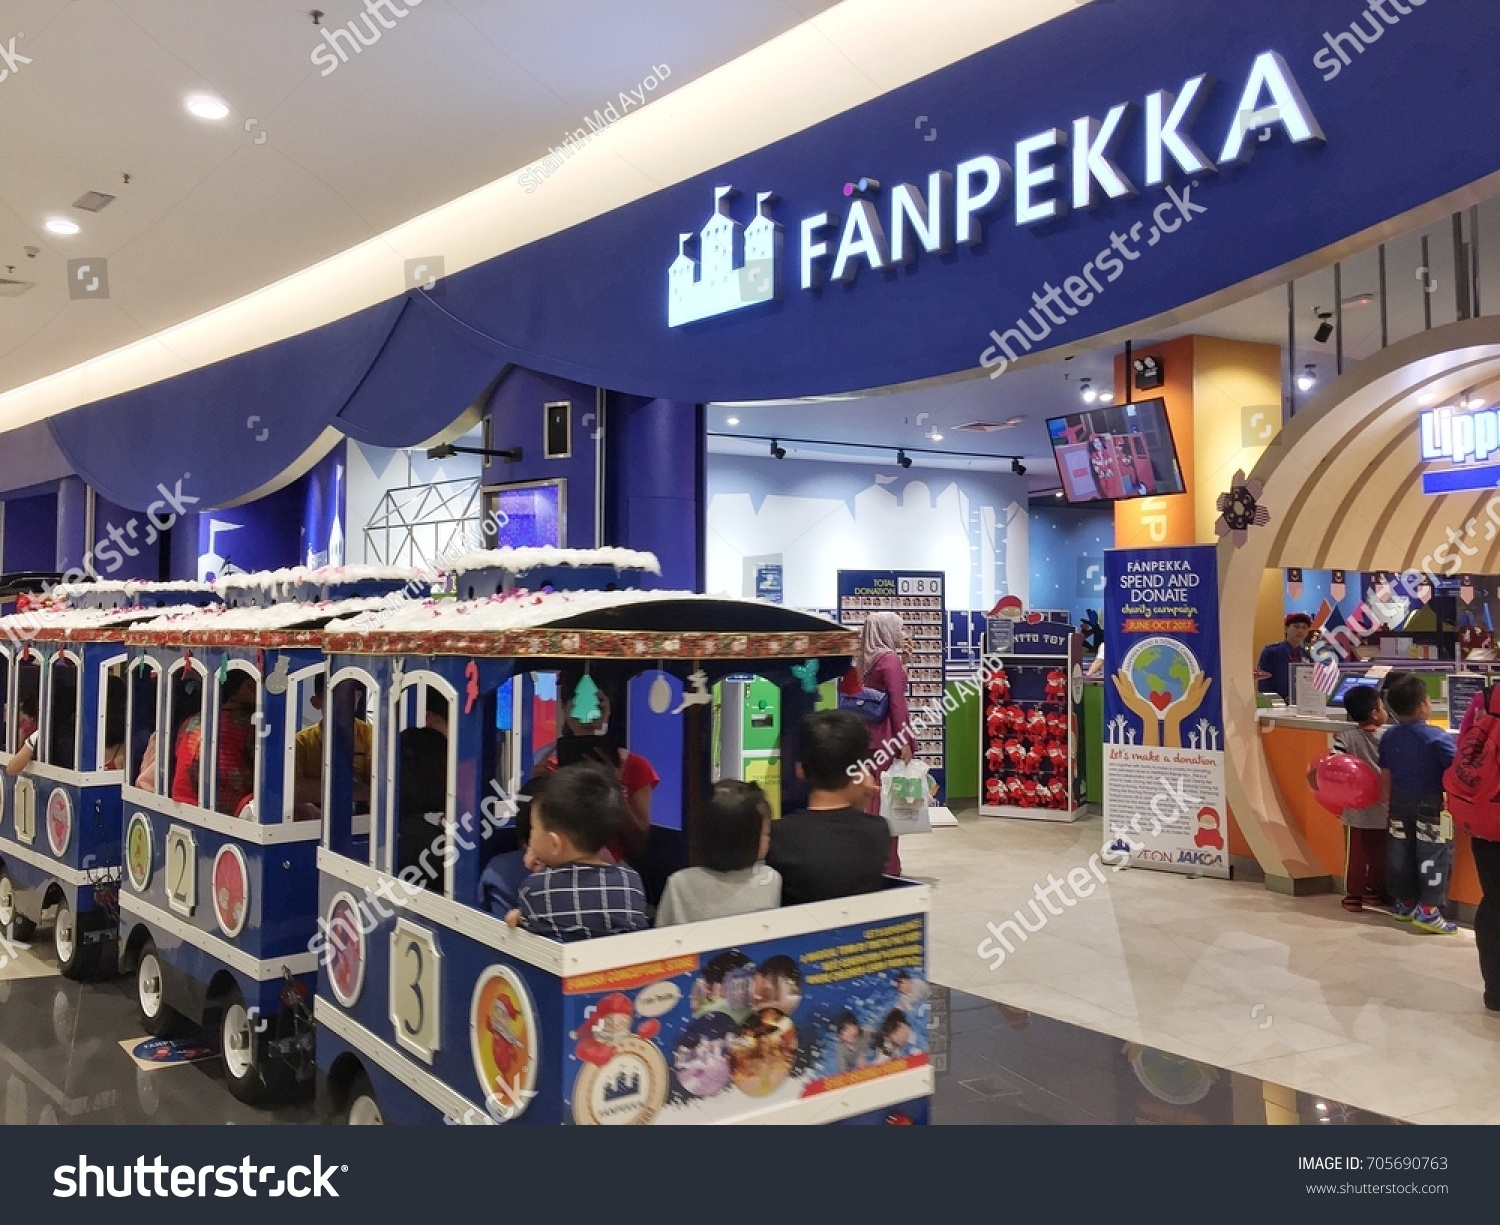 Johor Bahrumalaysiaaugust 30 2017 Fanpekka Theme Park Stock Photo Voucher Bahrumalaysia August 2017fanpekka Is A In The